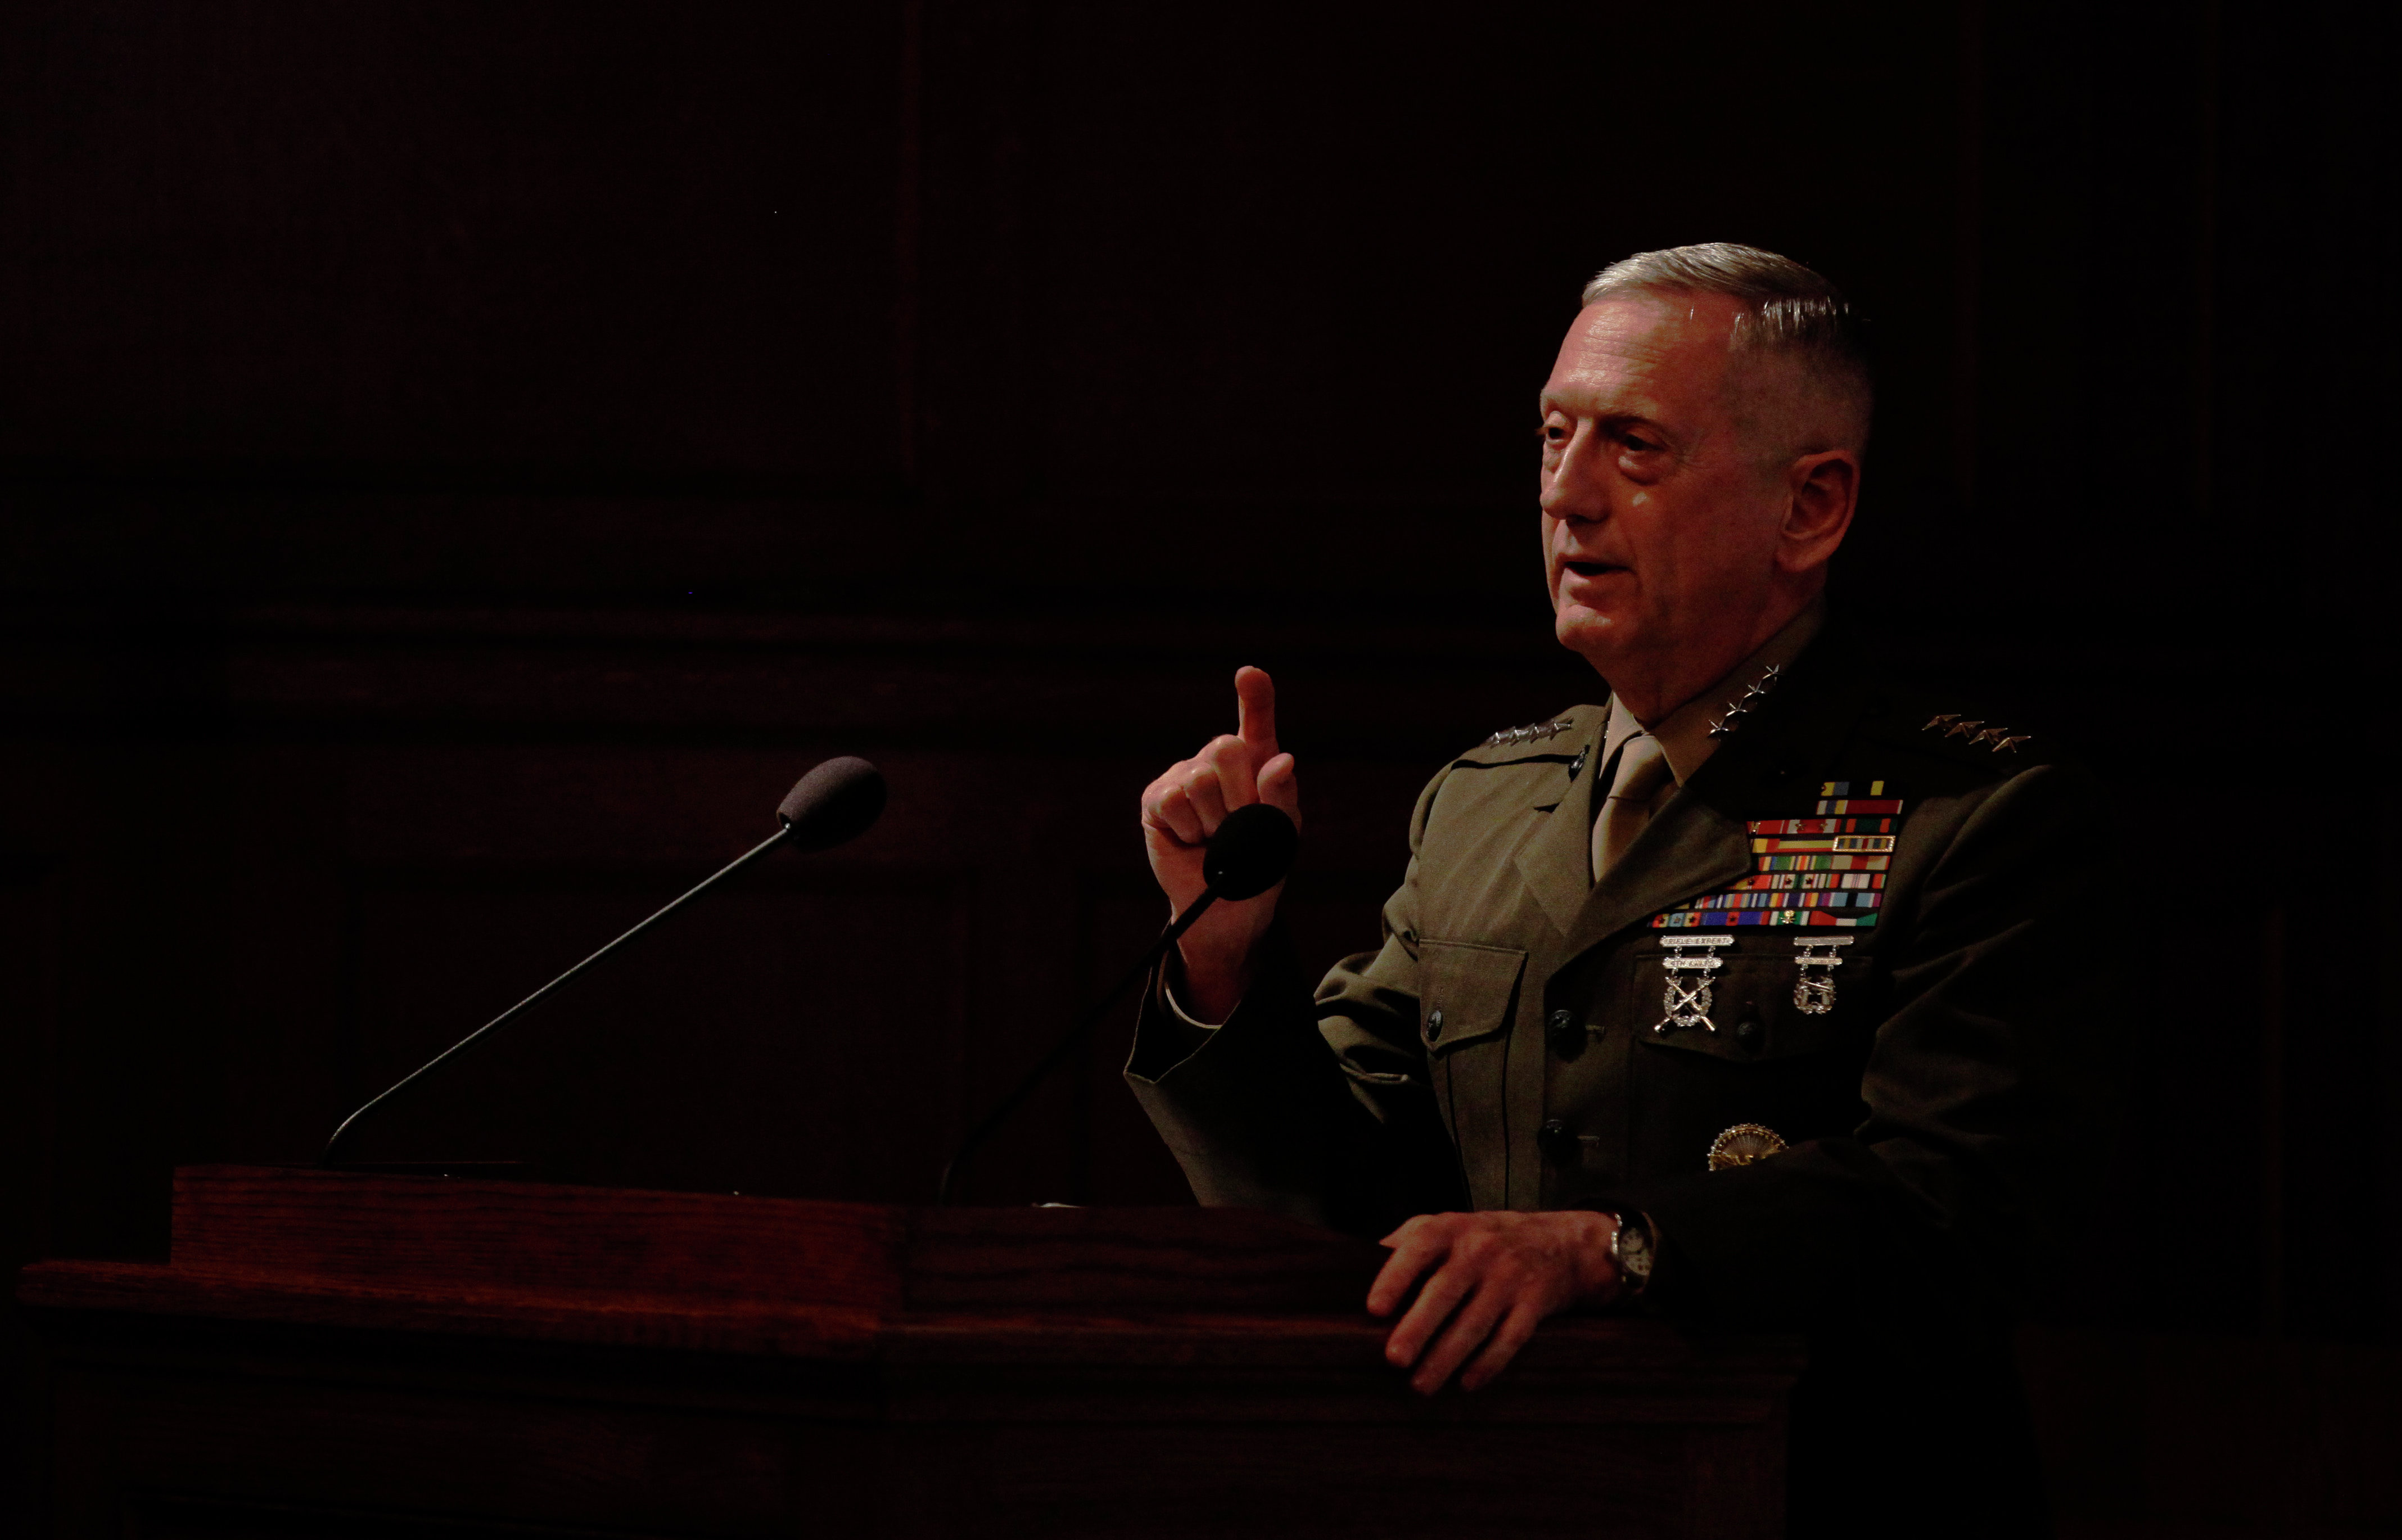 Gen. James Mattis, the head of U.S. Central Command, takes questions after delivering a lecture to the London think tank Policy Exchange in London, Tuesday, Feb. 1, 2011.